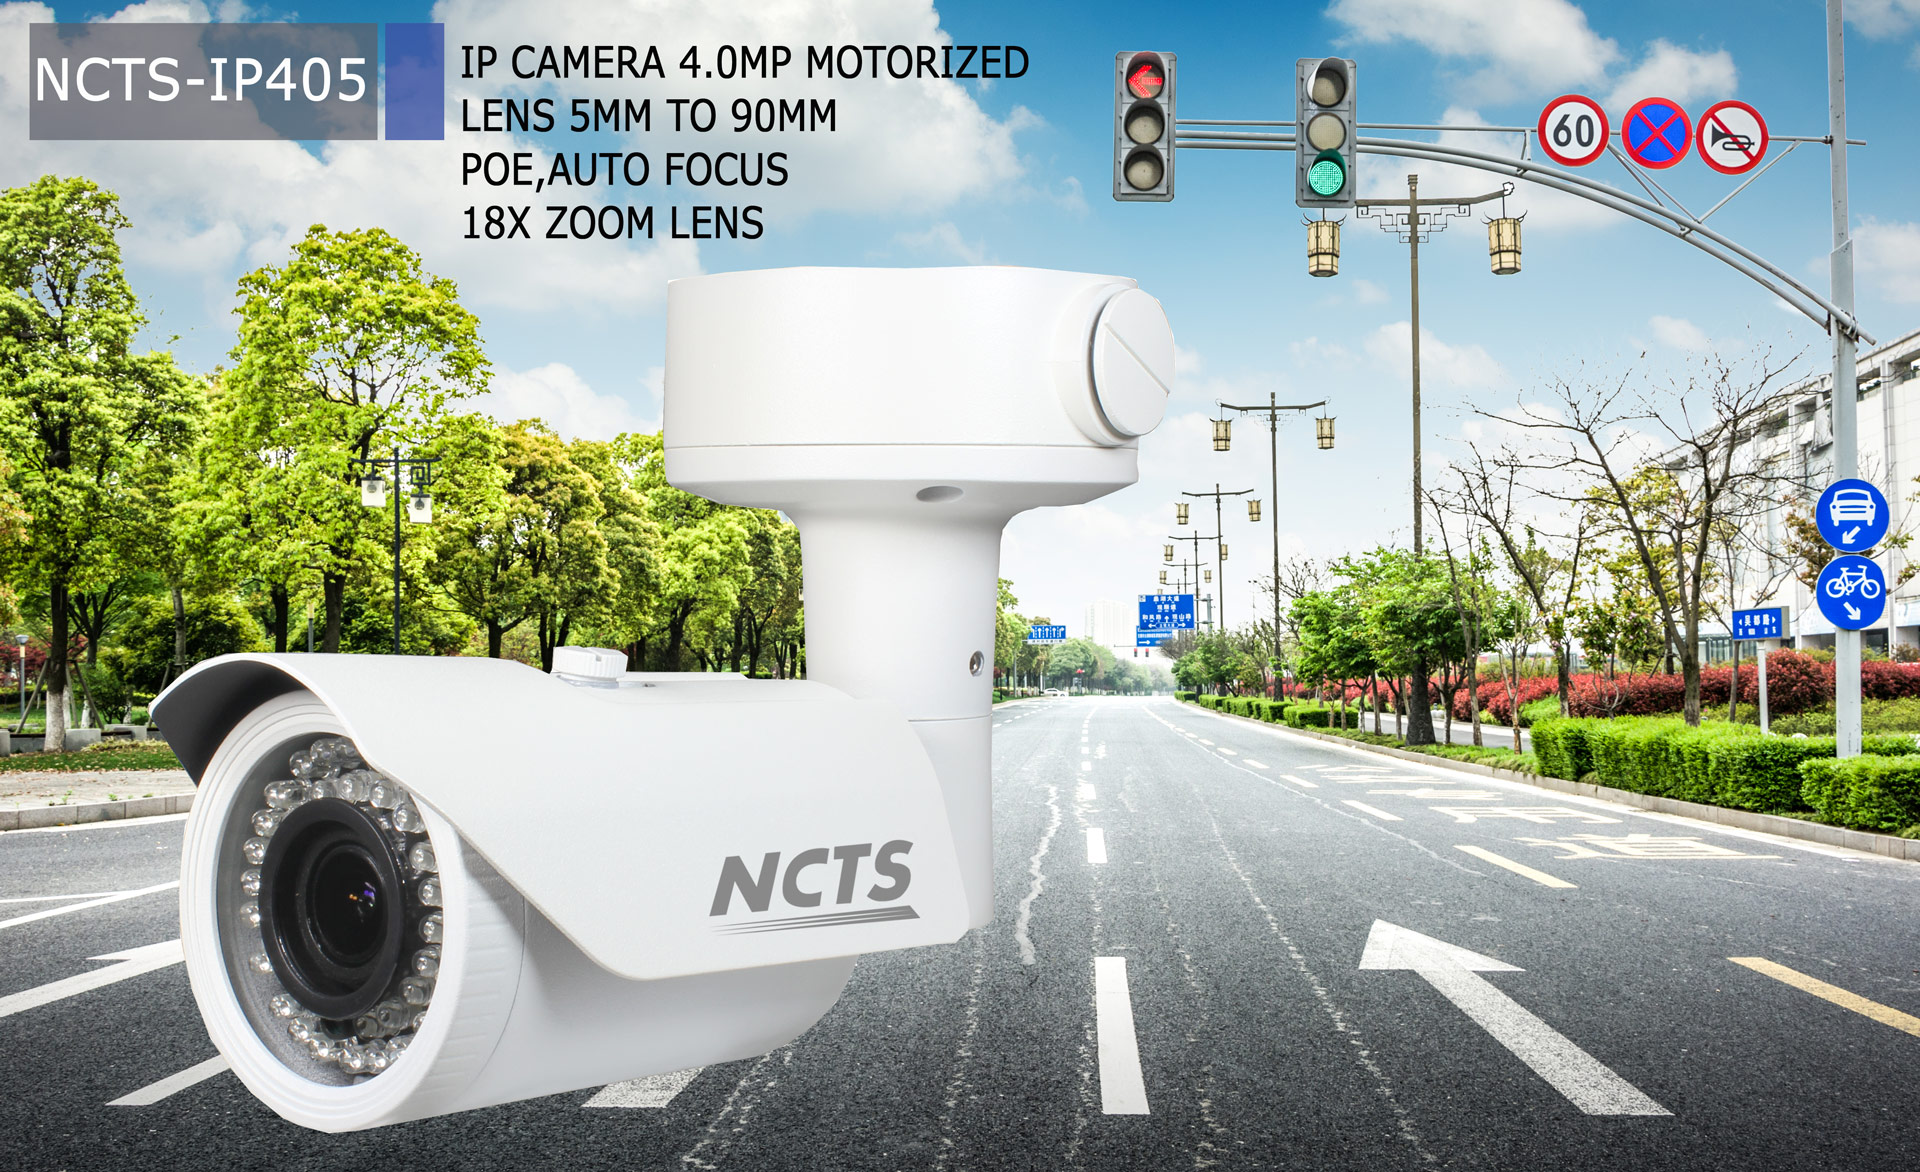 NCTS-IP405